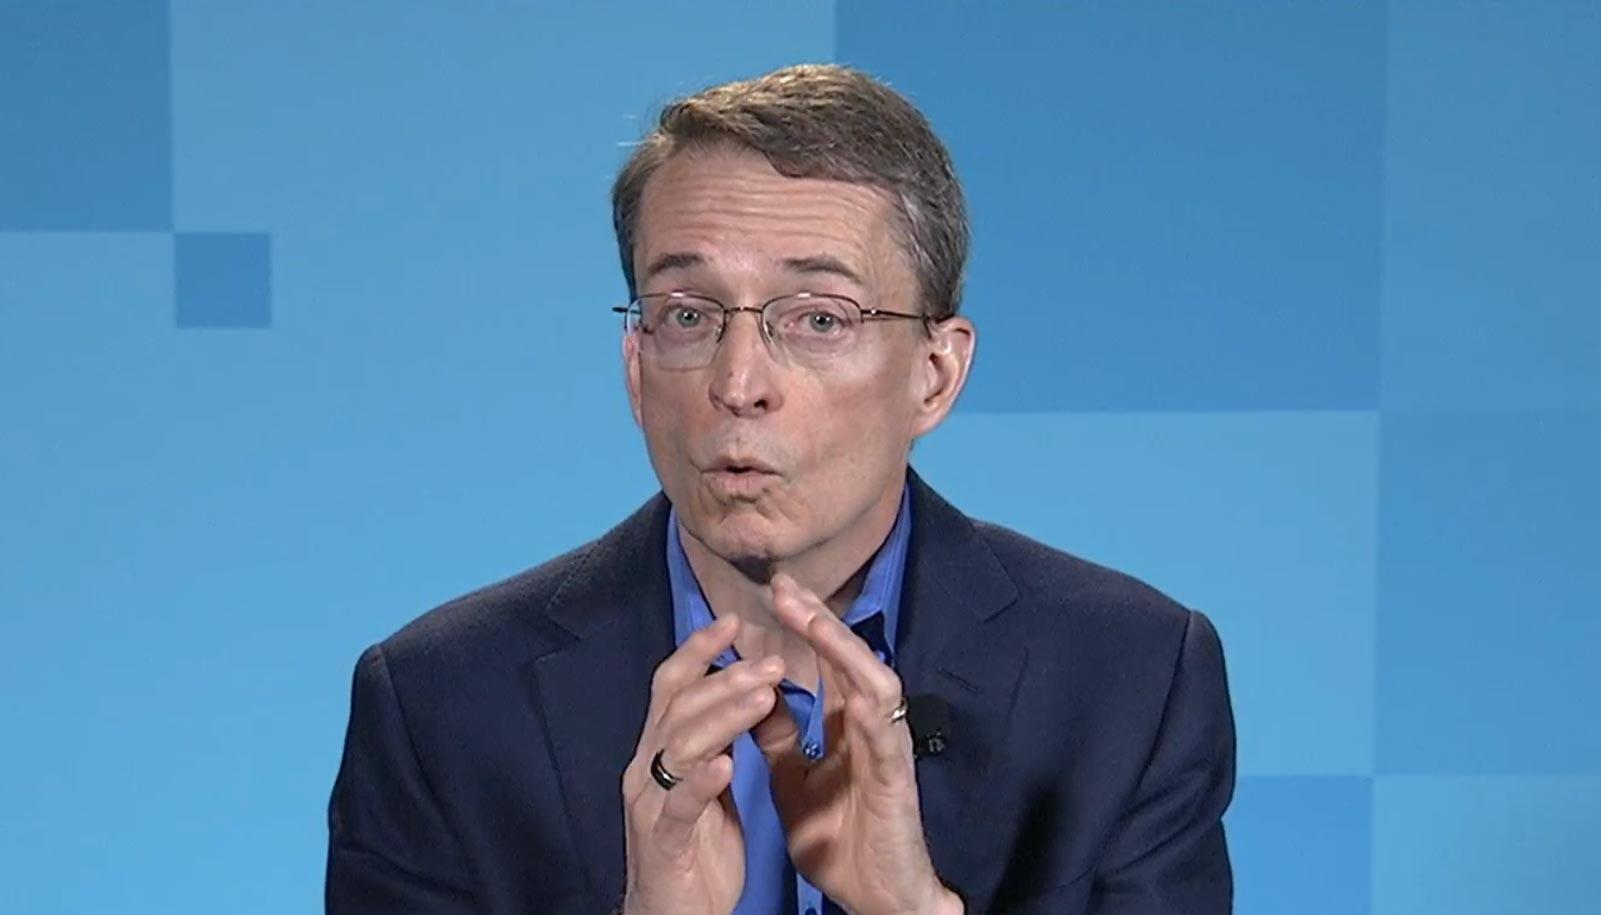 Intel CEO Pat Gelsinger announces Intel Foundry Services will build other companies' processors.